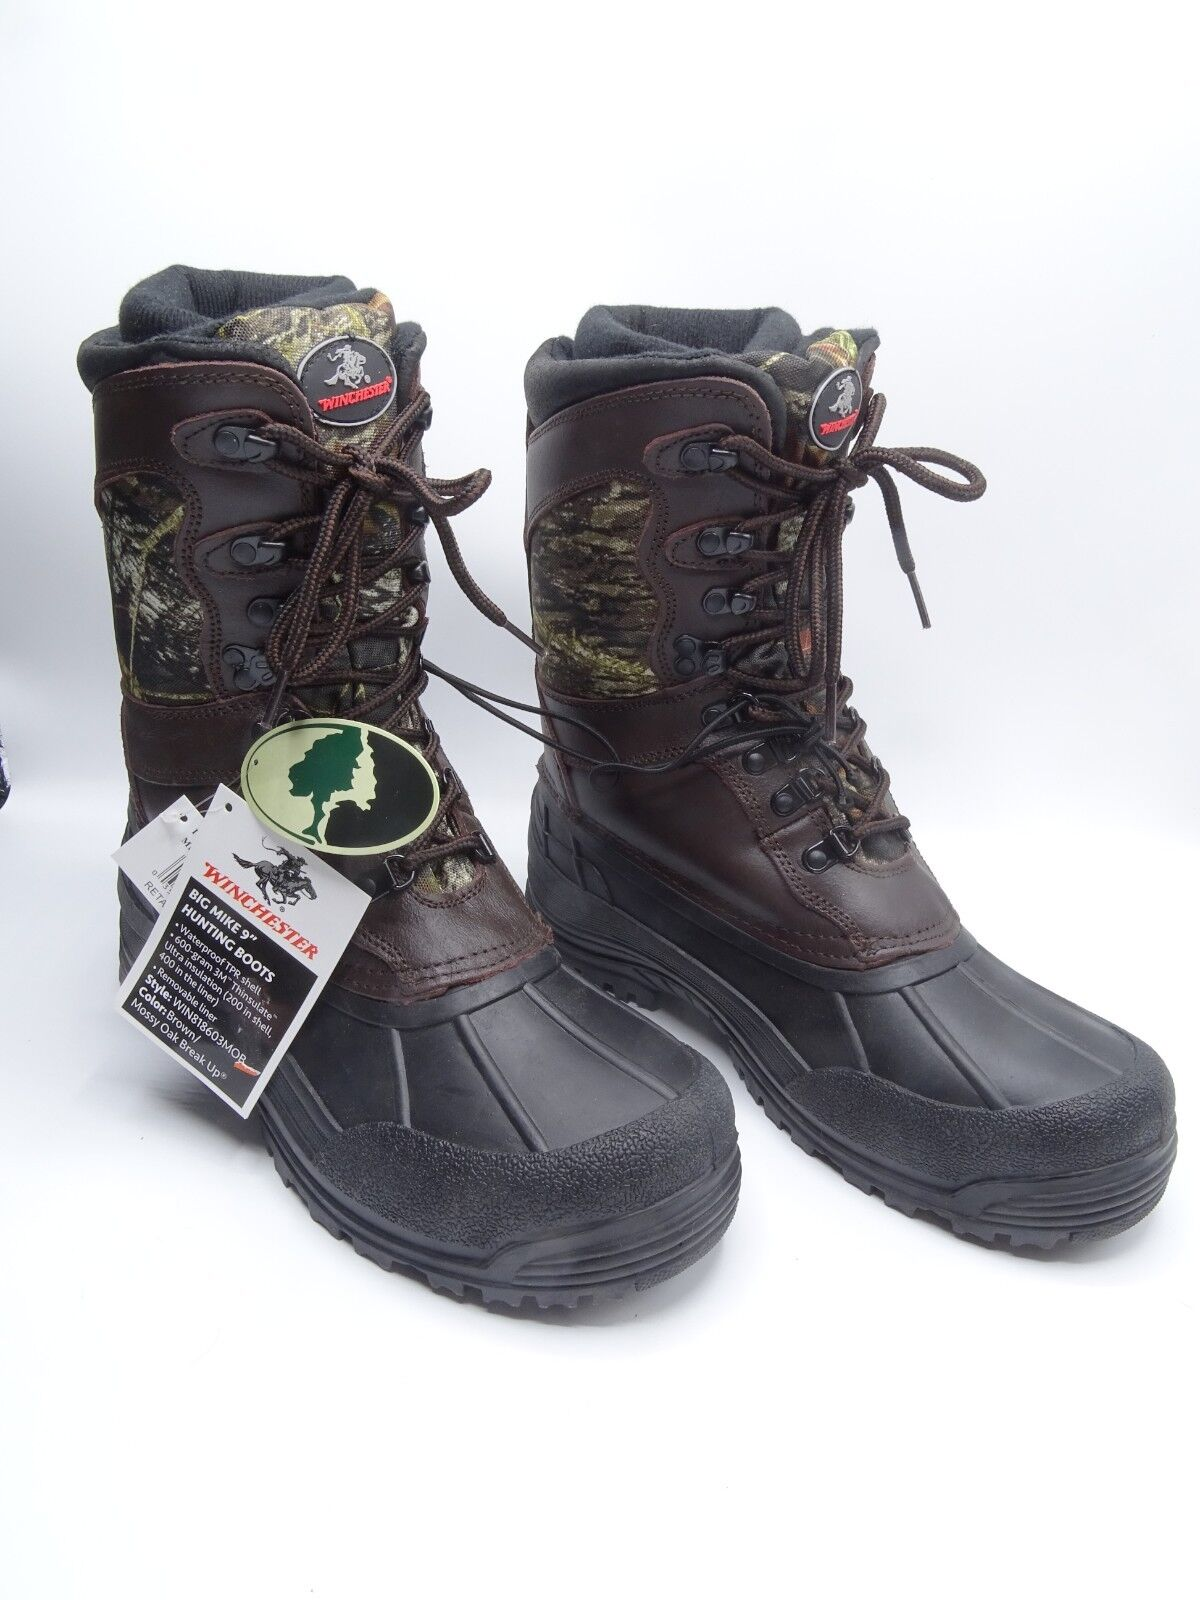 NEW Winchester Mossy Oak Cammo BIG MIKE 9  Insulated Hunting Boots Mens Size 10